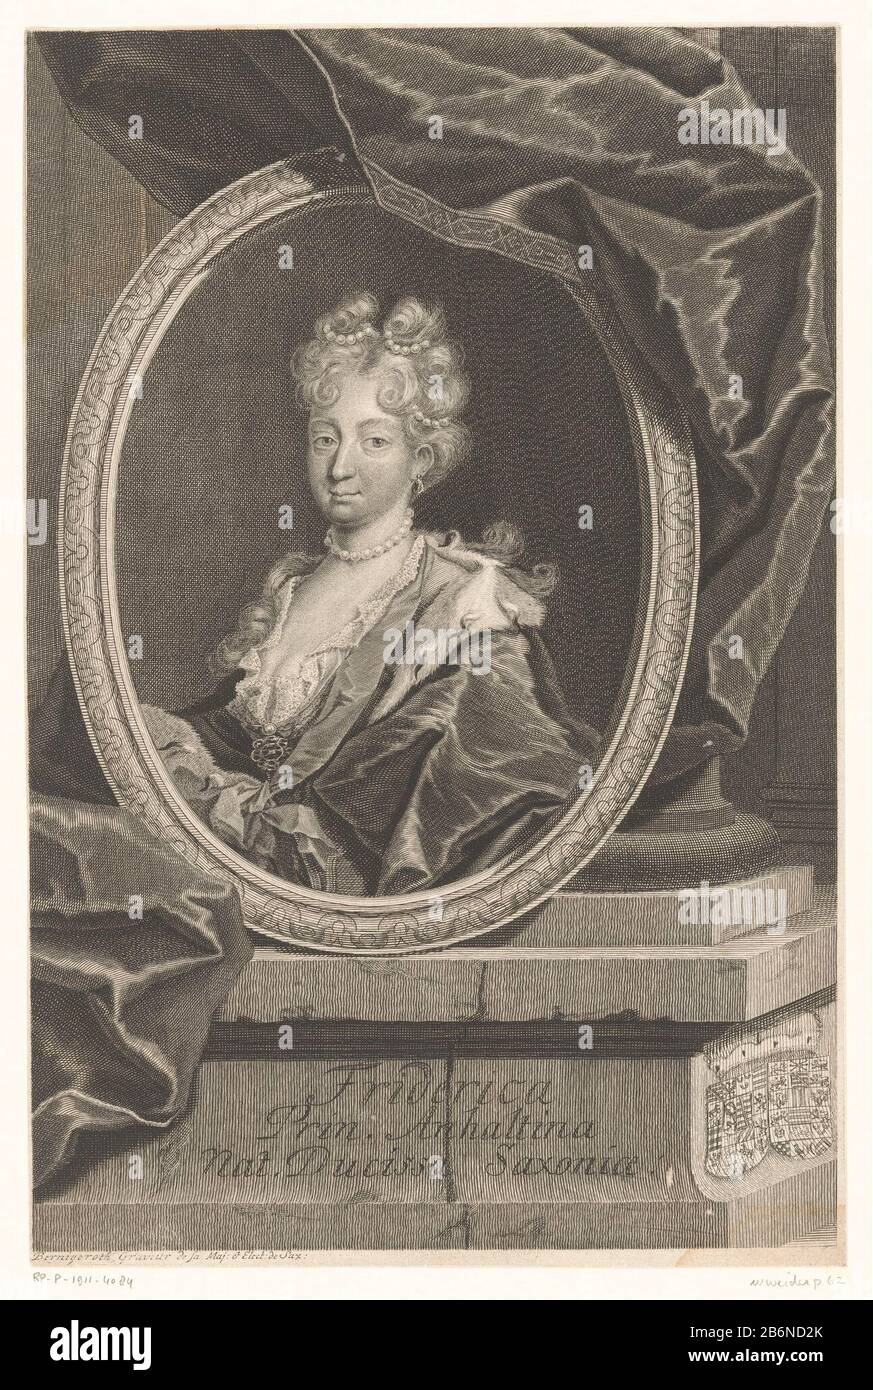 Friederike von Sachsen-Gotha-Altenburg, vorstin van Anhalt-Zerbst Friederike von Sachsen-Gotha-Altenburg, Princess of Anhalt-Zerbst Object Type : picture Item number: RP-P-1911-4084 Inscriptions / Brands: collector's mark, verso, stamped: Lugt 2228 Manufacturer : printmaker Martin Bernigeroth (listed object) Place manufacture: Leipzig Dating: 1707 - 1733 Physical features: etching and engra material: paper Technique: etching / engra (printing process) Dimensions: sheet: h 333 mm (cut in the sheet edge) × W 214 mm (cut in the sheet edge)  Subject: historical persons - BB - womanarmorial bearing Stock Photo